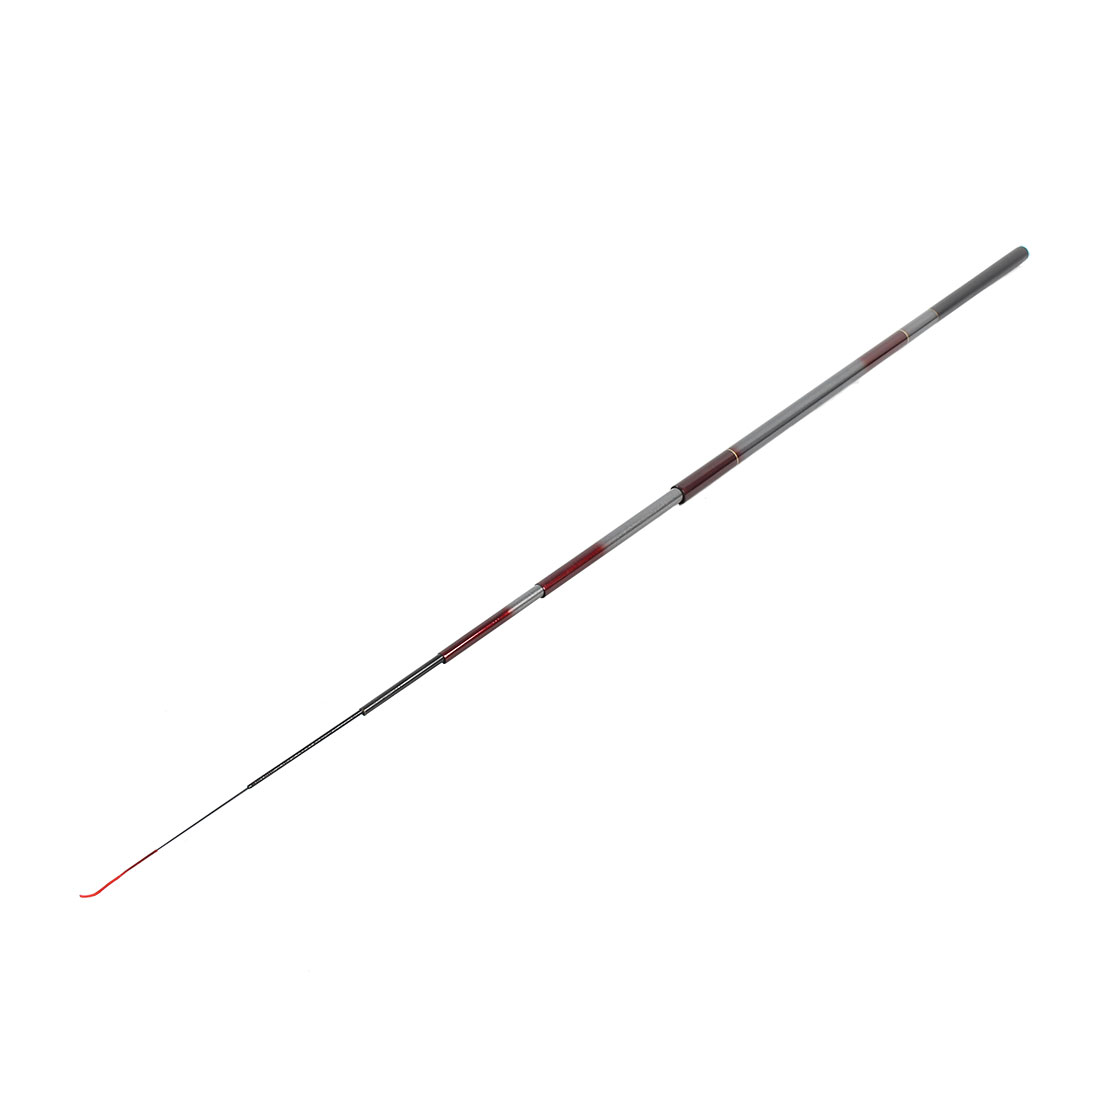 Telescopic 8 Sections Travel Camping Fishing Pole Rod Dark Red 360cm 11.8Ft Length